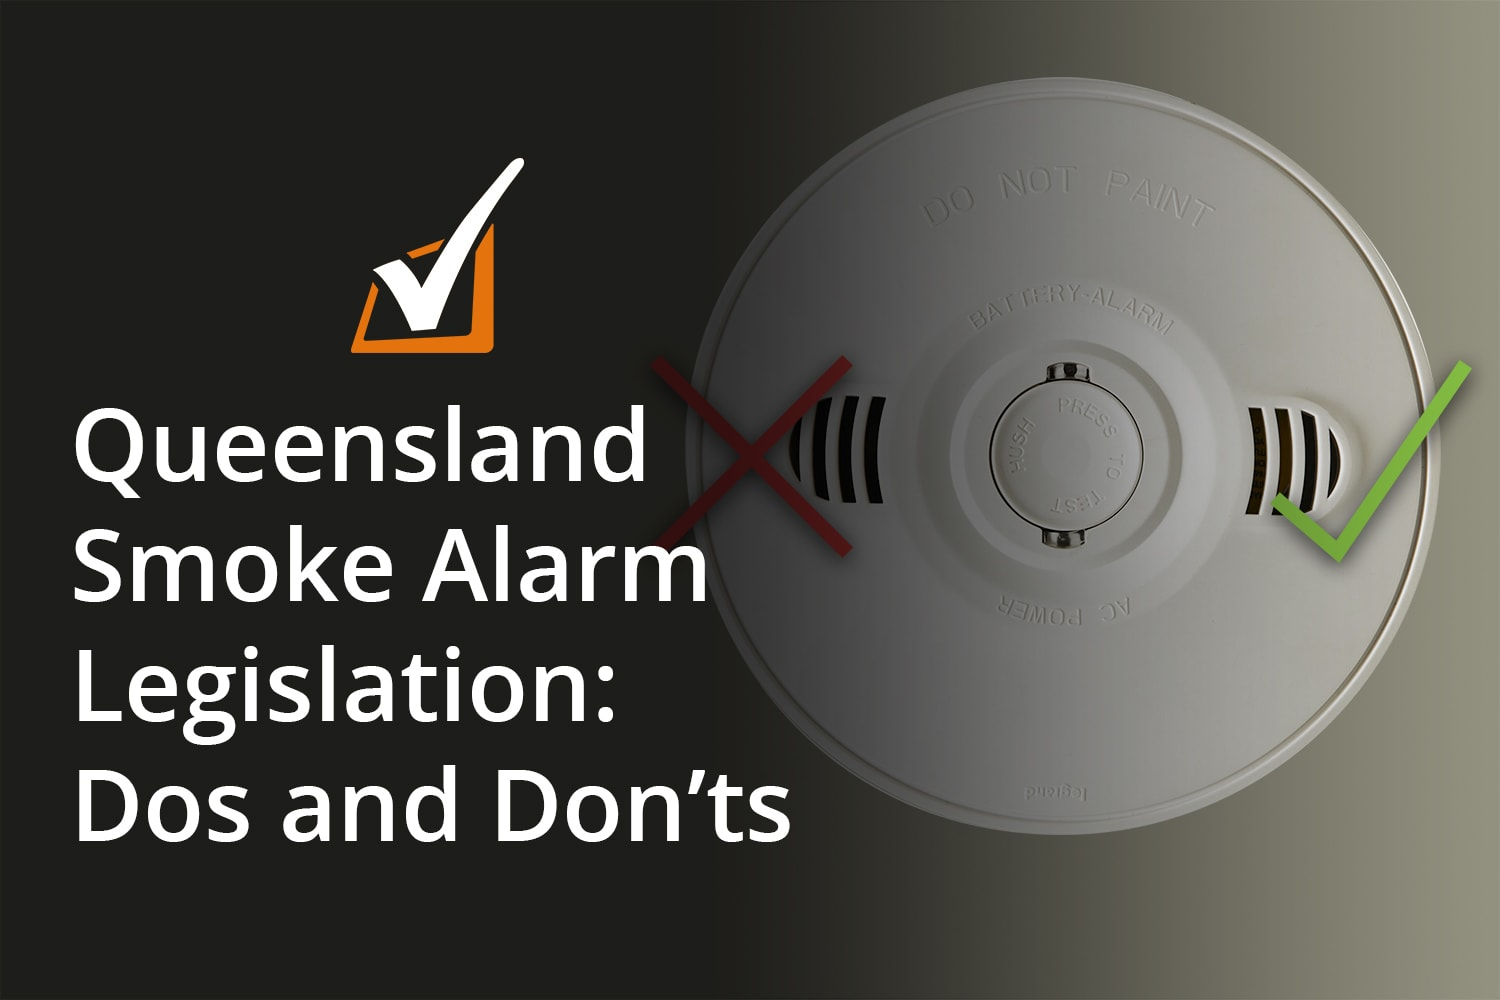 Queensland Smoke Alarm Legislation